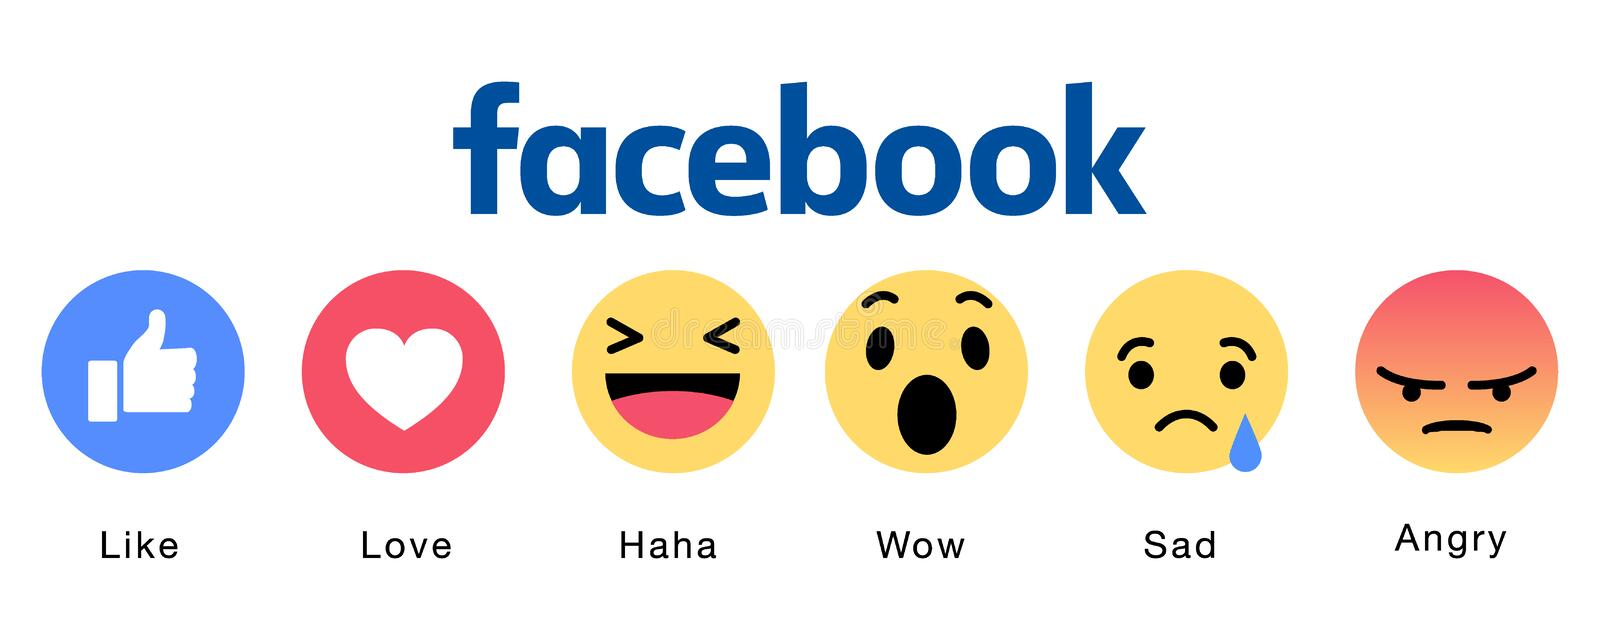 Facebook Emoji icons set stock illustration